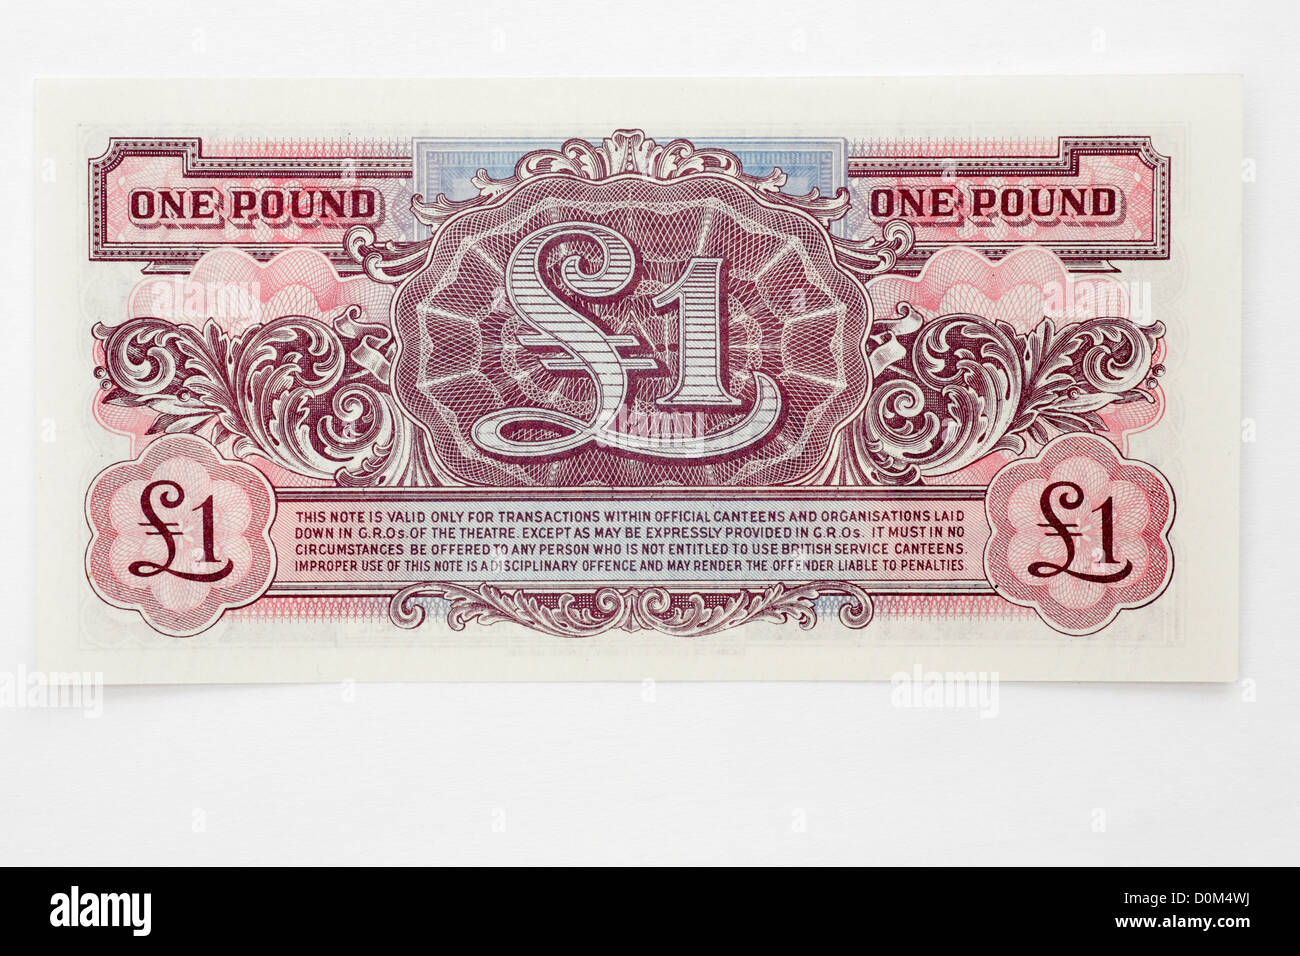 British Armed Forces token currency money banknotes issued for use only in Naafi and other services shops. - Stock Image